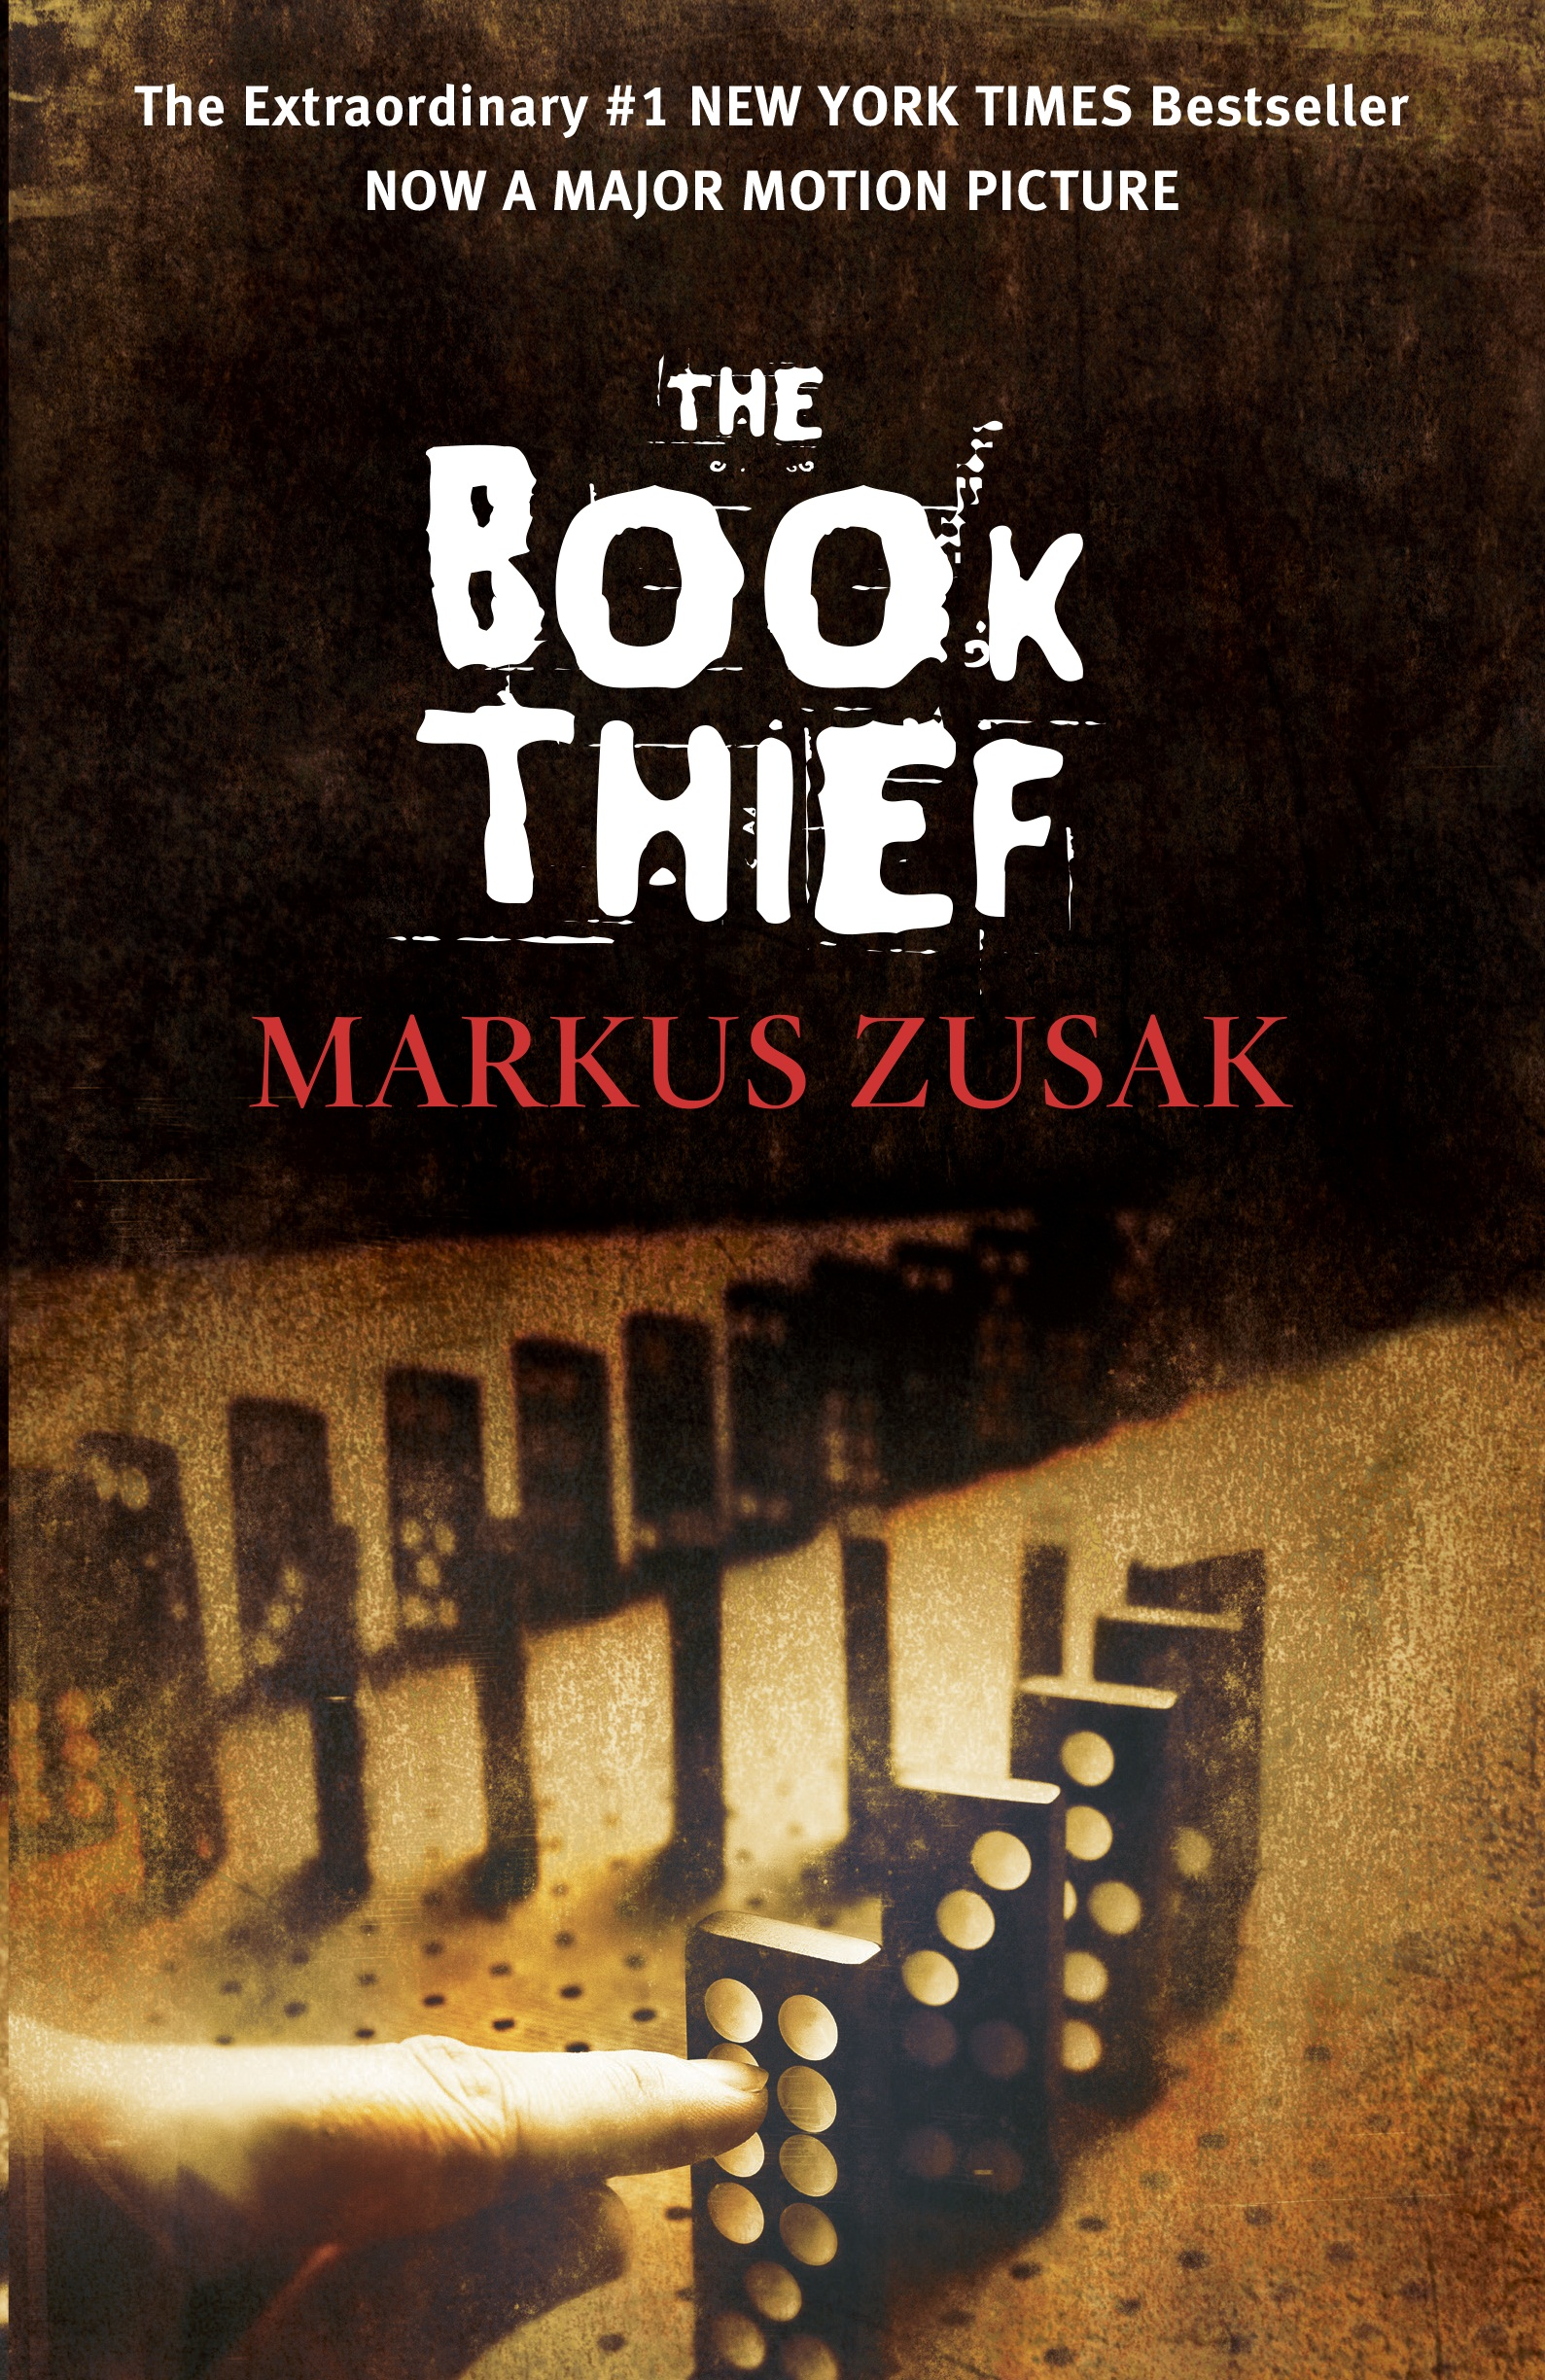 Has anyone read any books by Markus Zusak?